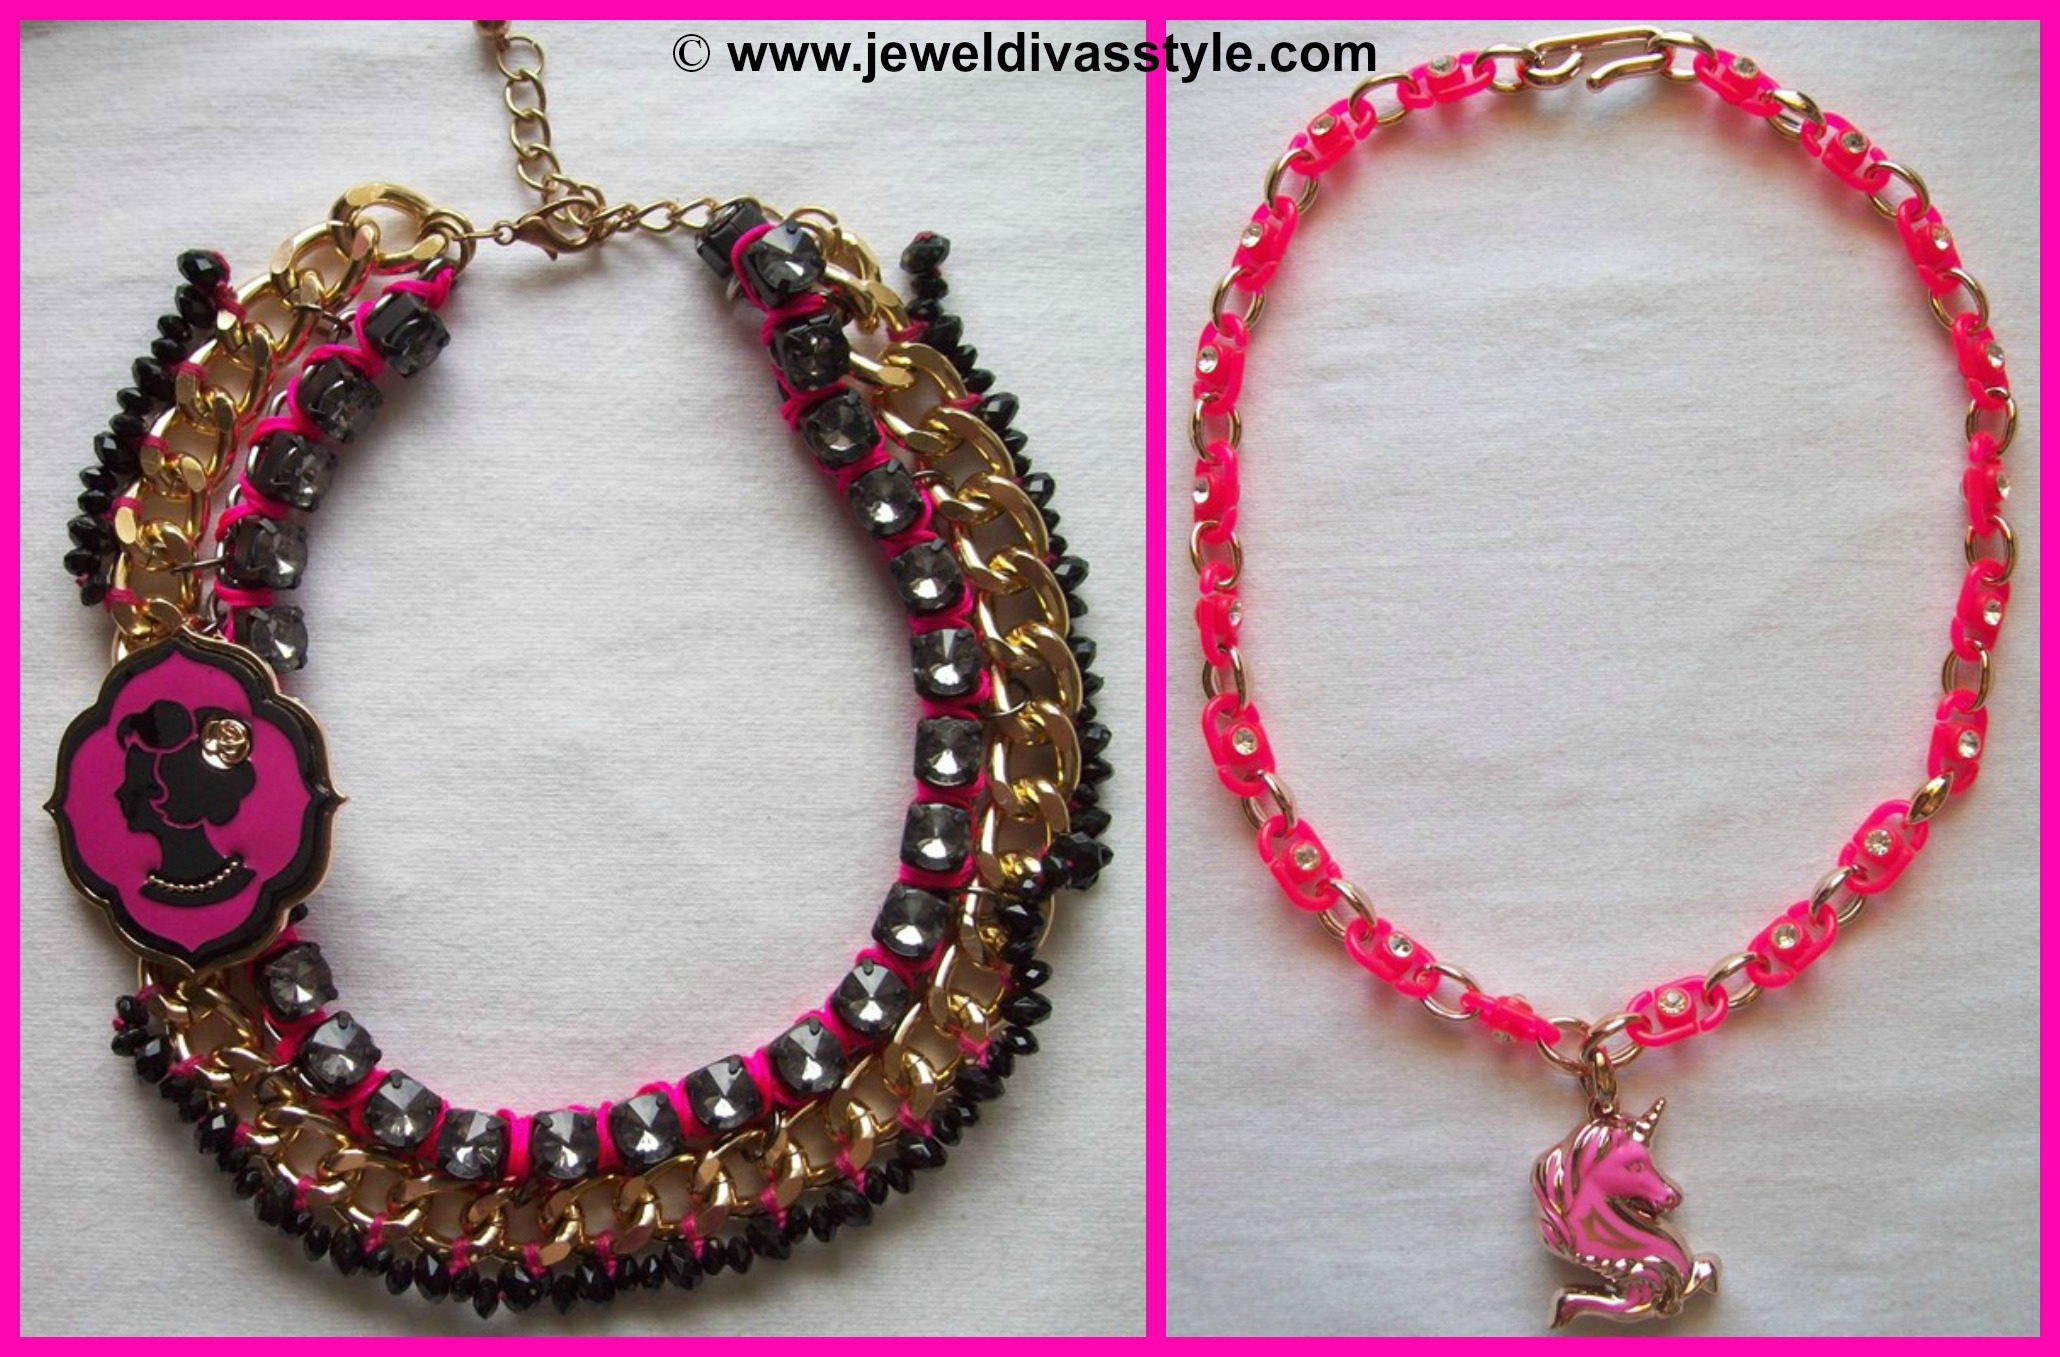 MY PERSONAL COLLECTION: New Red and Pink Jewellery